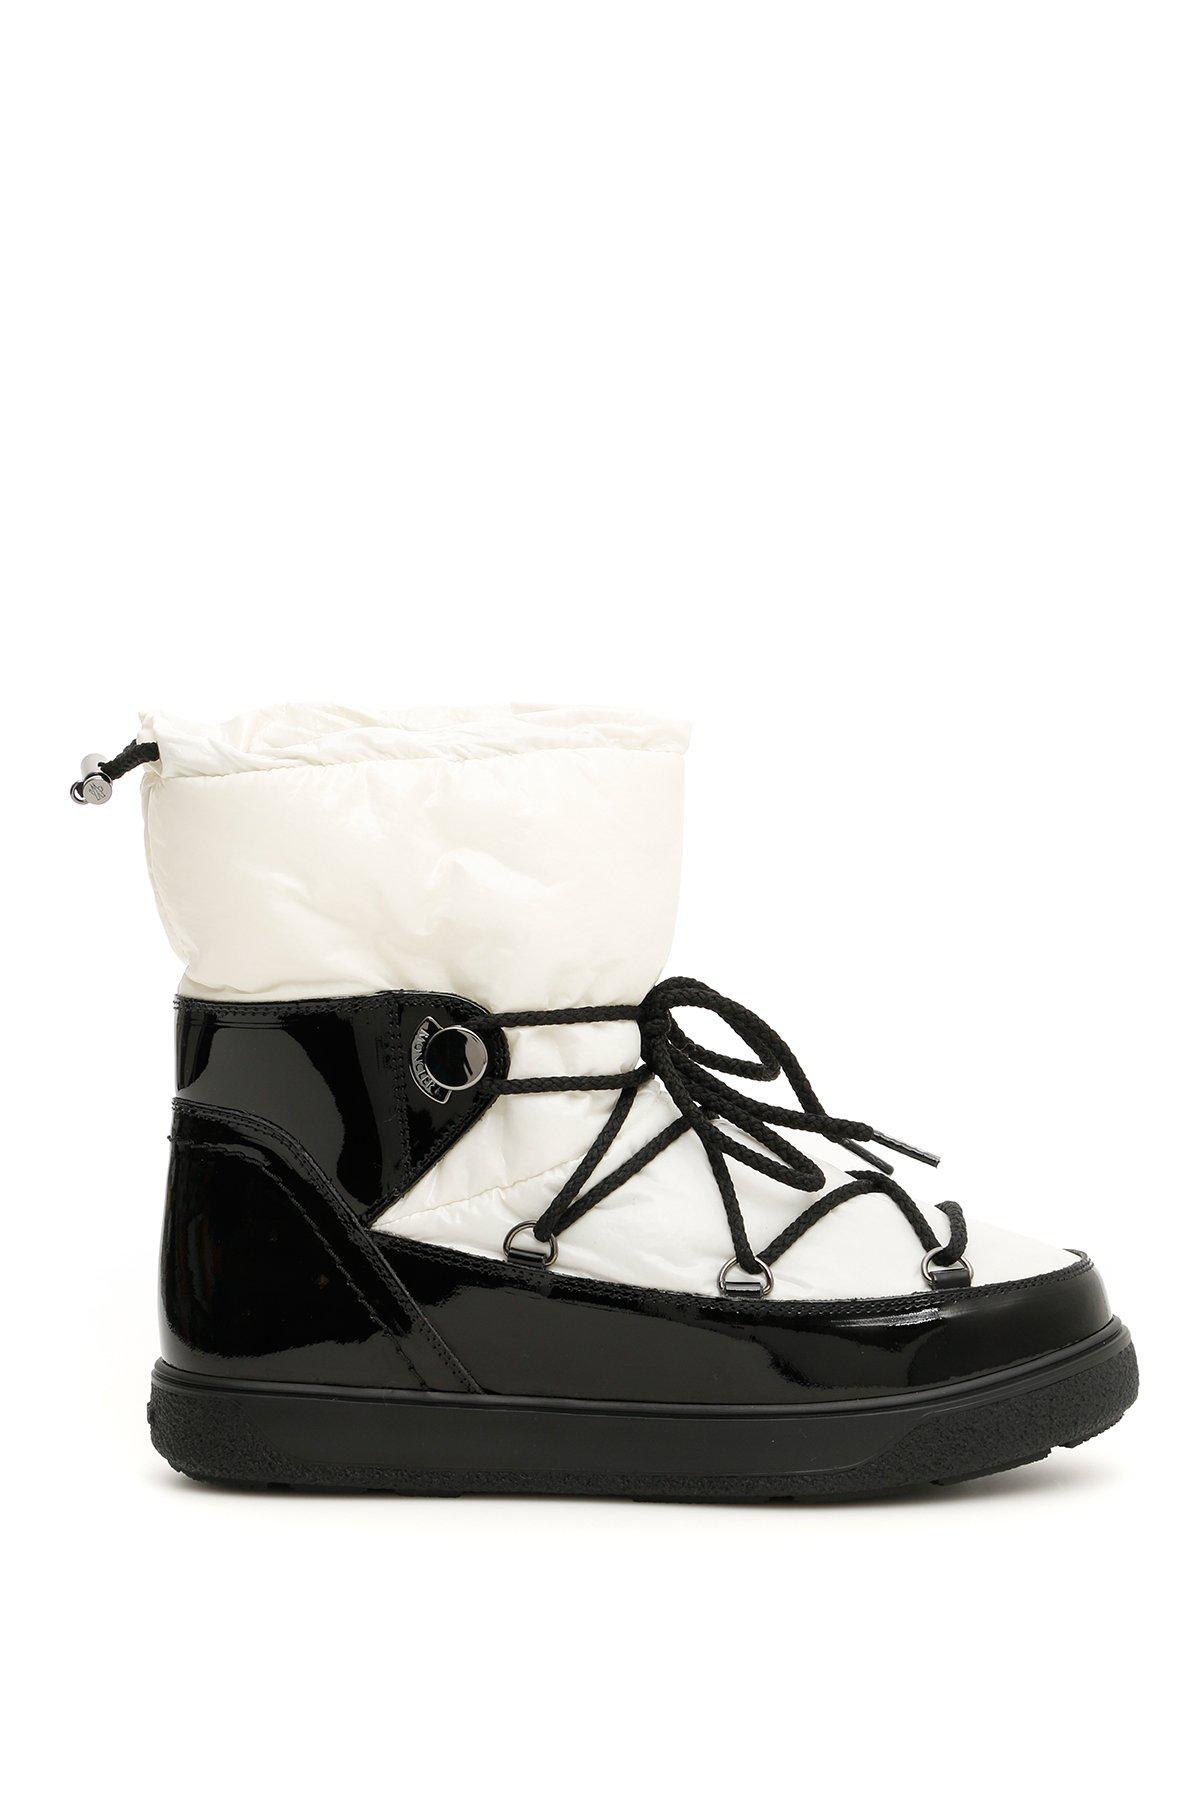 on sale 984d9 aae3d Moncler Basic Ynnaf Patent Moon Boots in Bianco